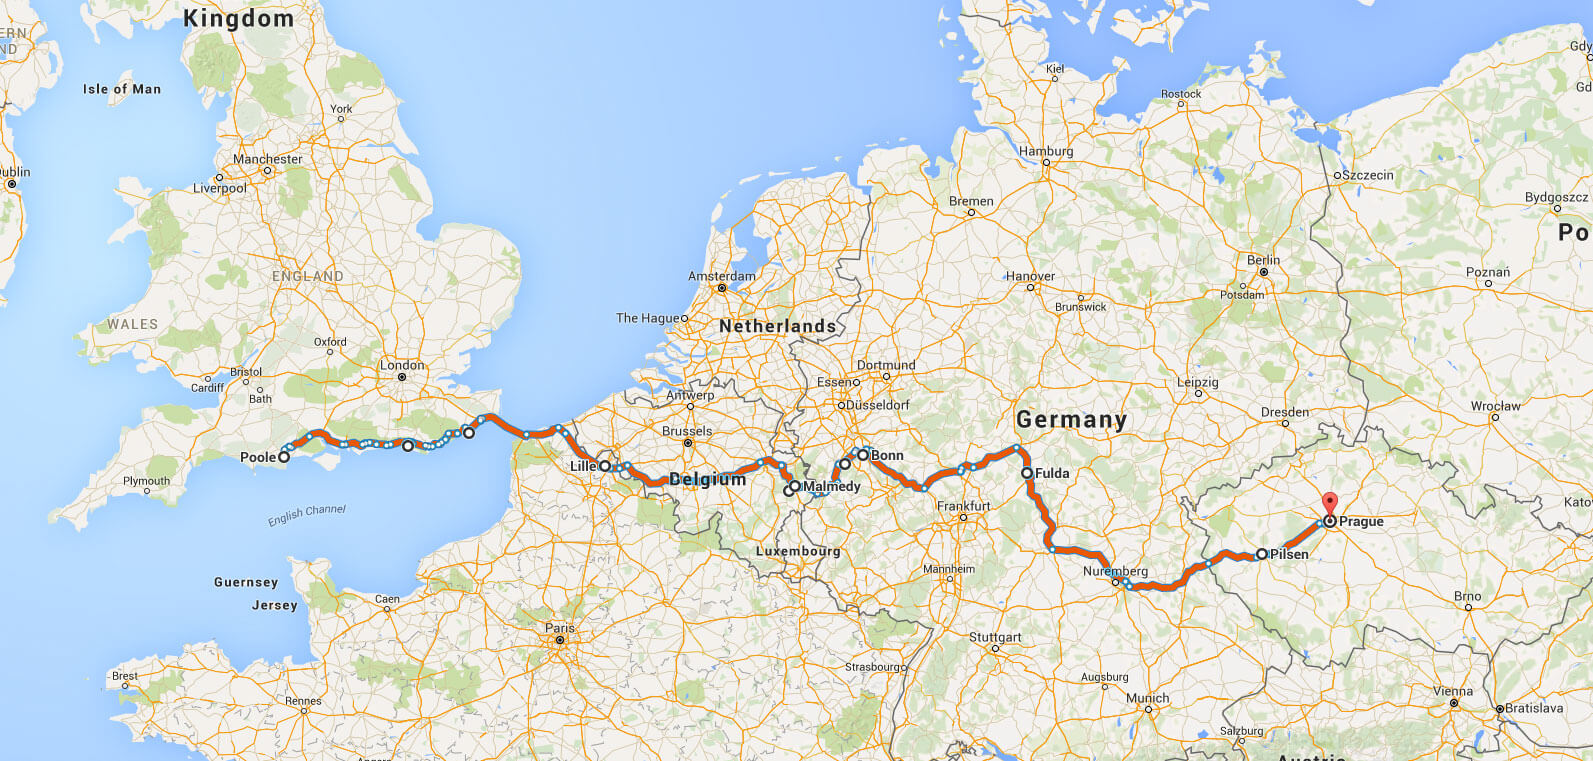 poole-to-prague-map